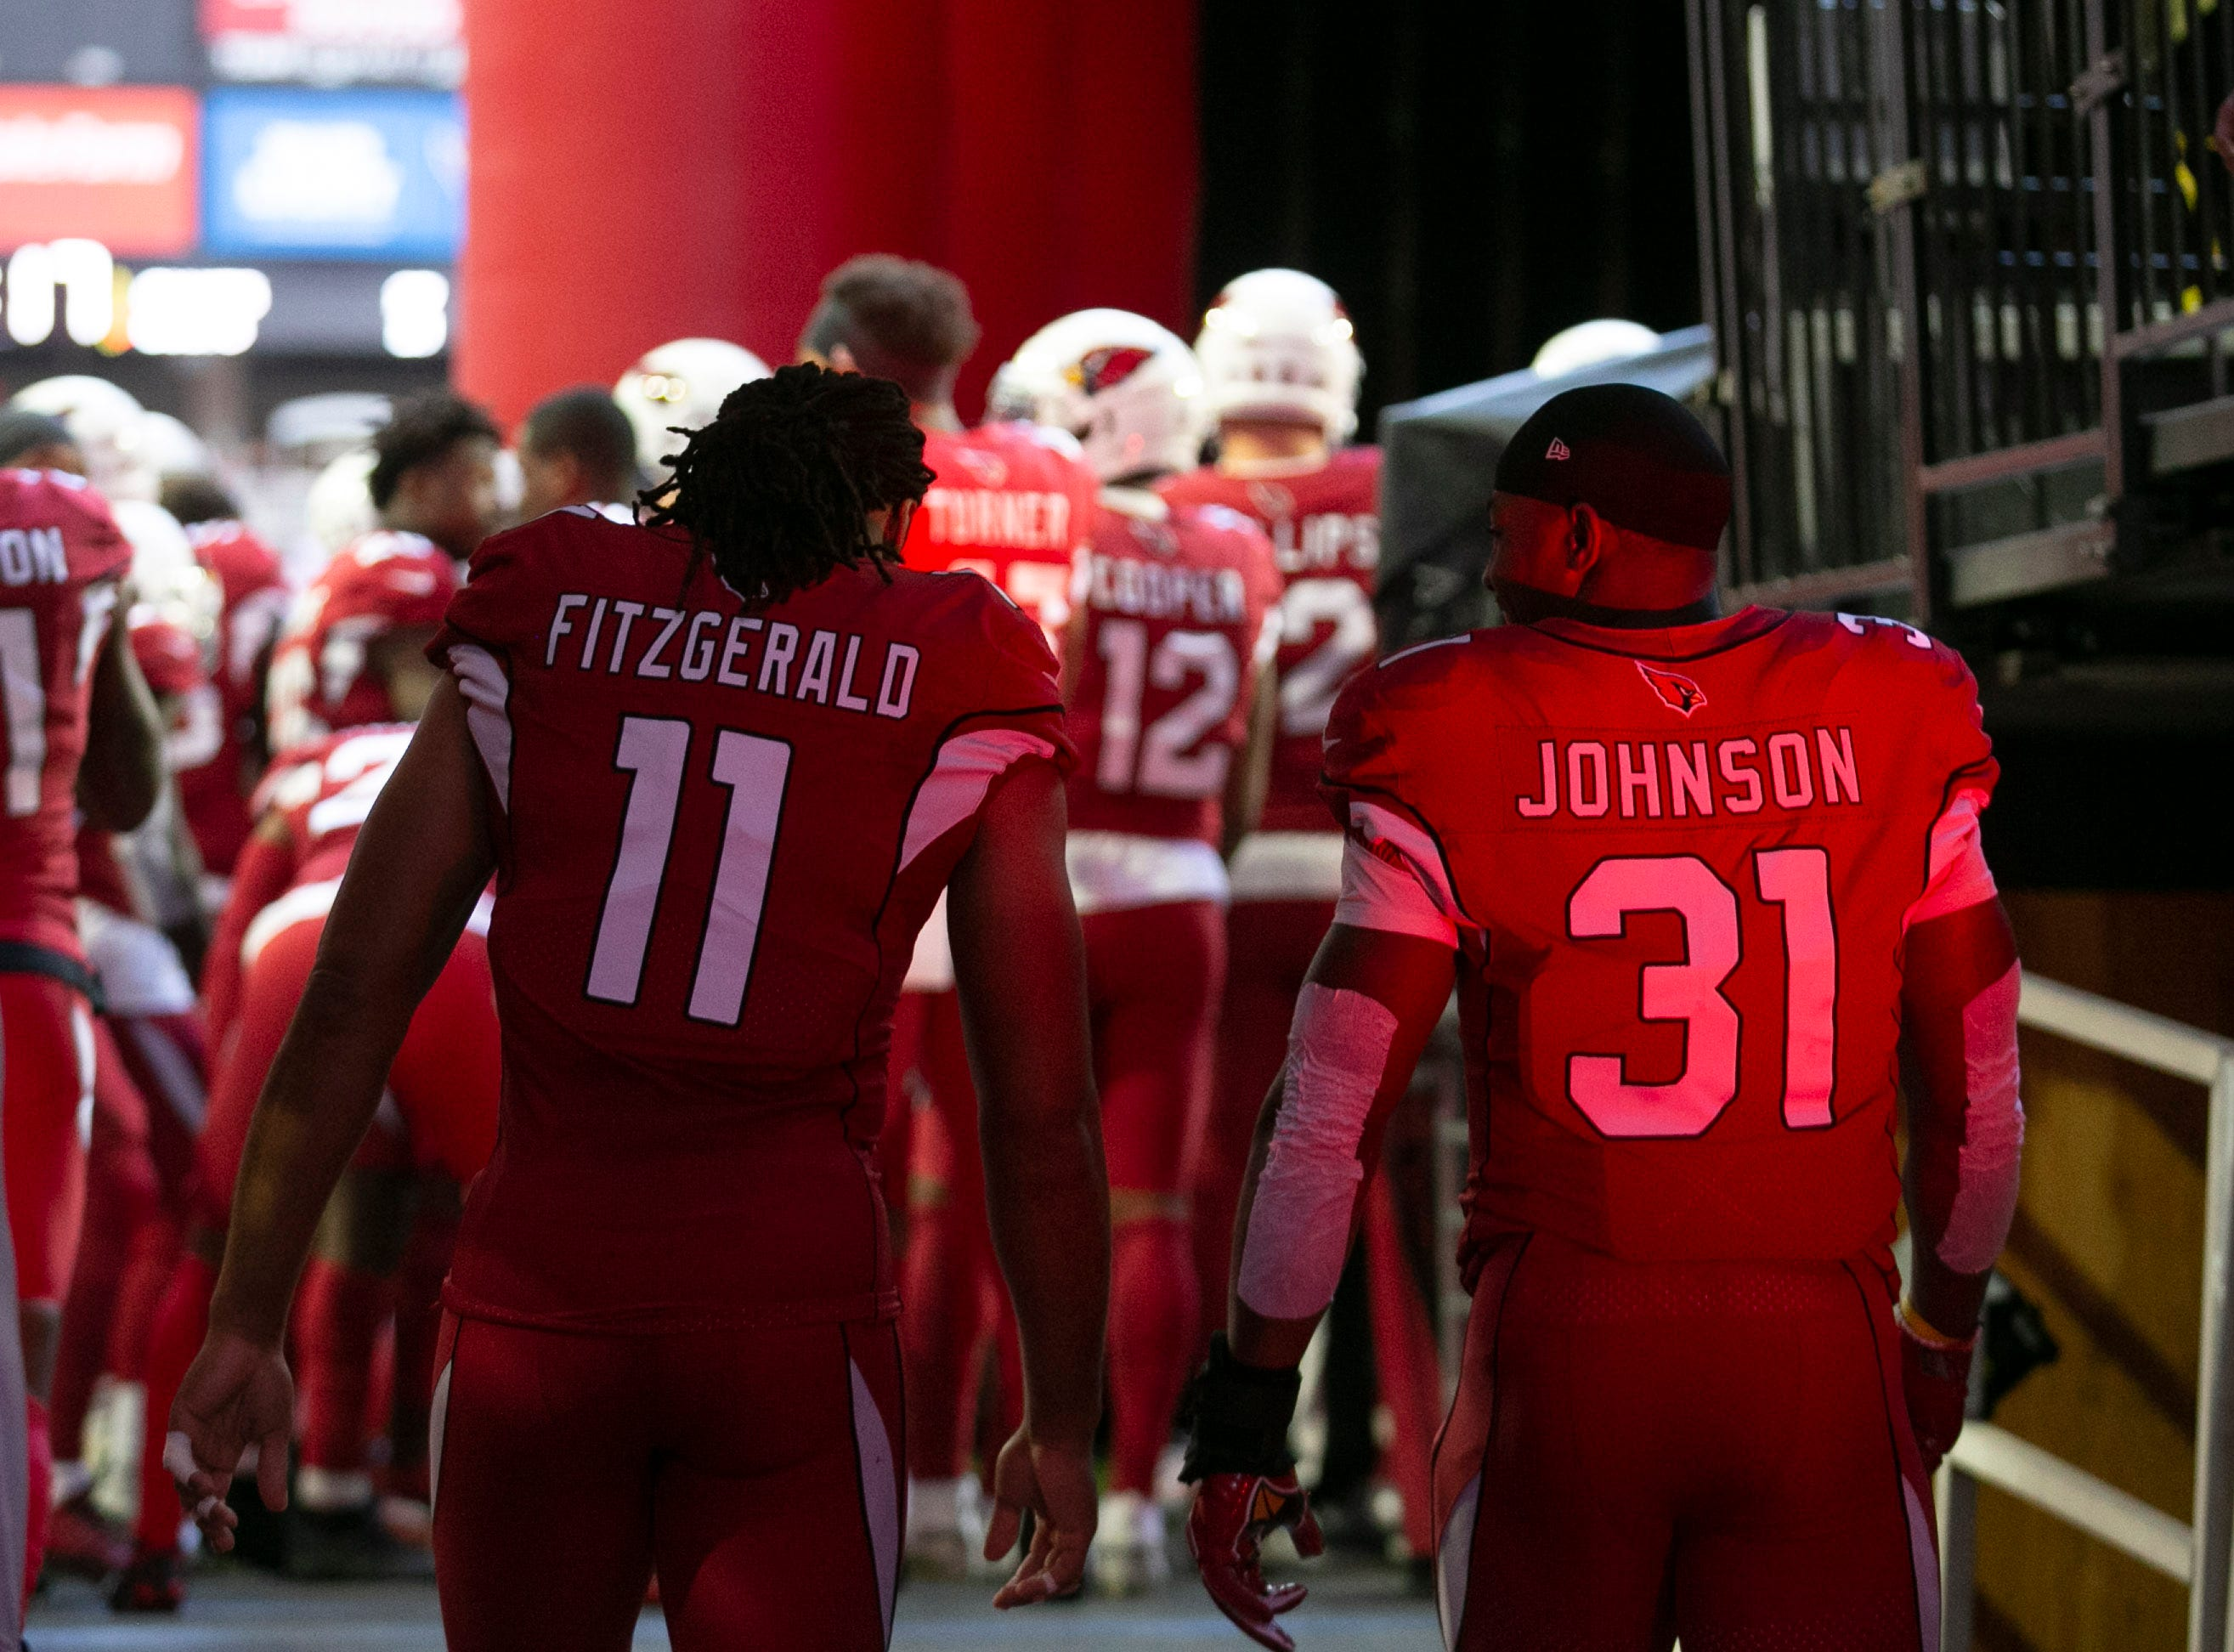 Cardinals wide receiver Larry Fitzgerald and running back David Johnson walk to the field before the game against the Rams at State Farm Stadium in Glendale on Sunday, Dec. 23, 2018.